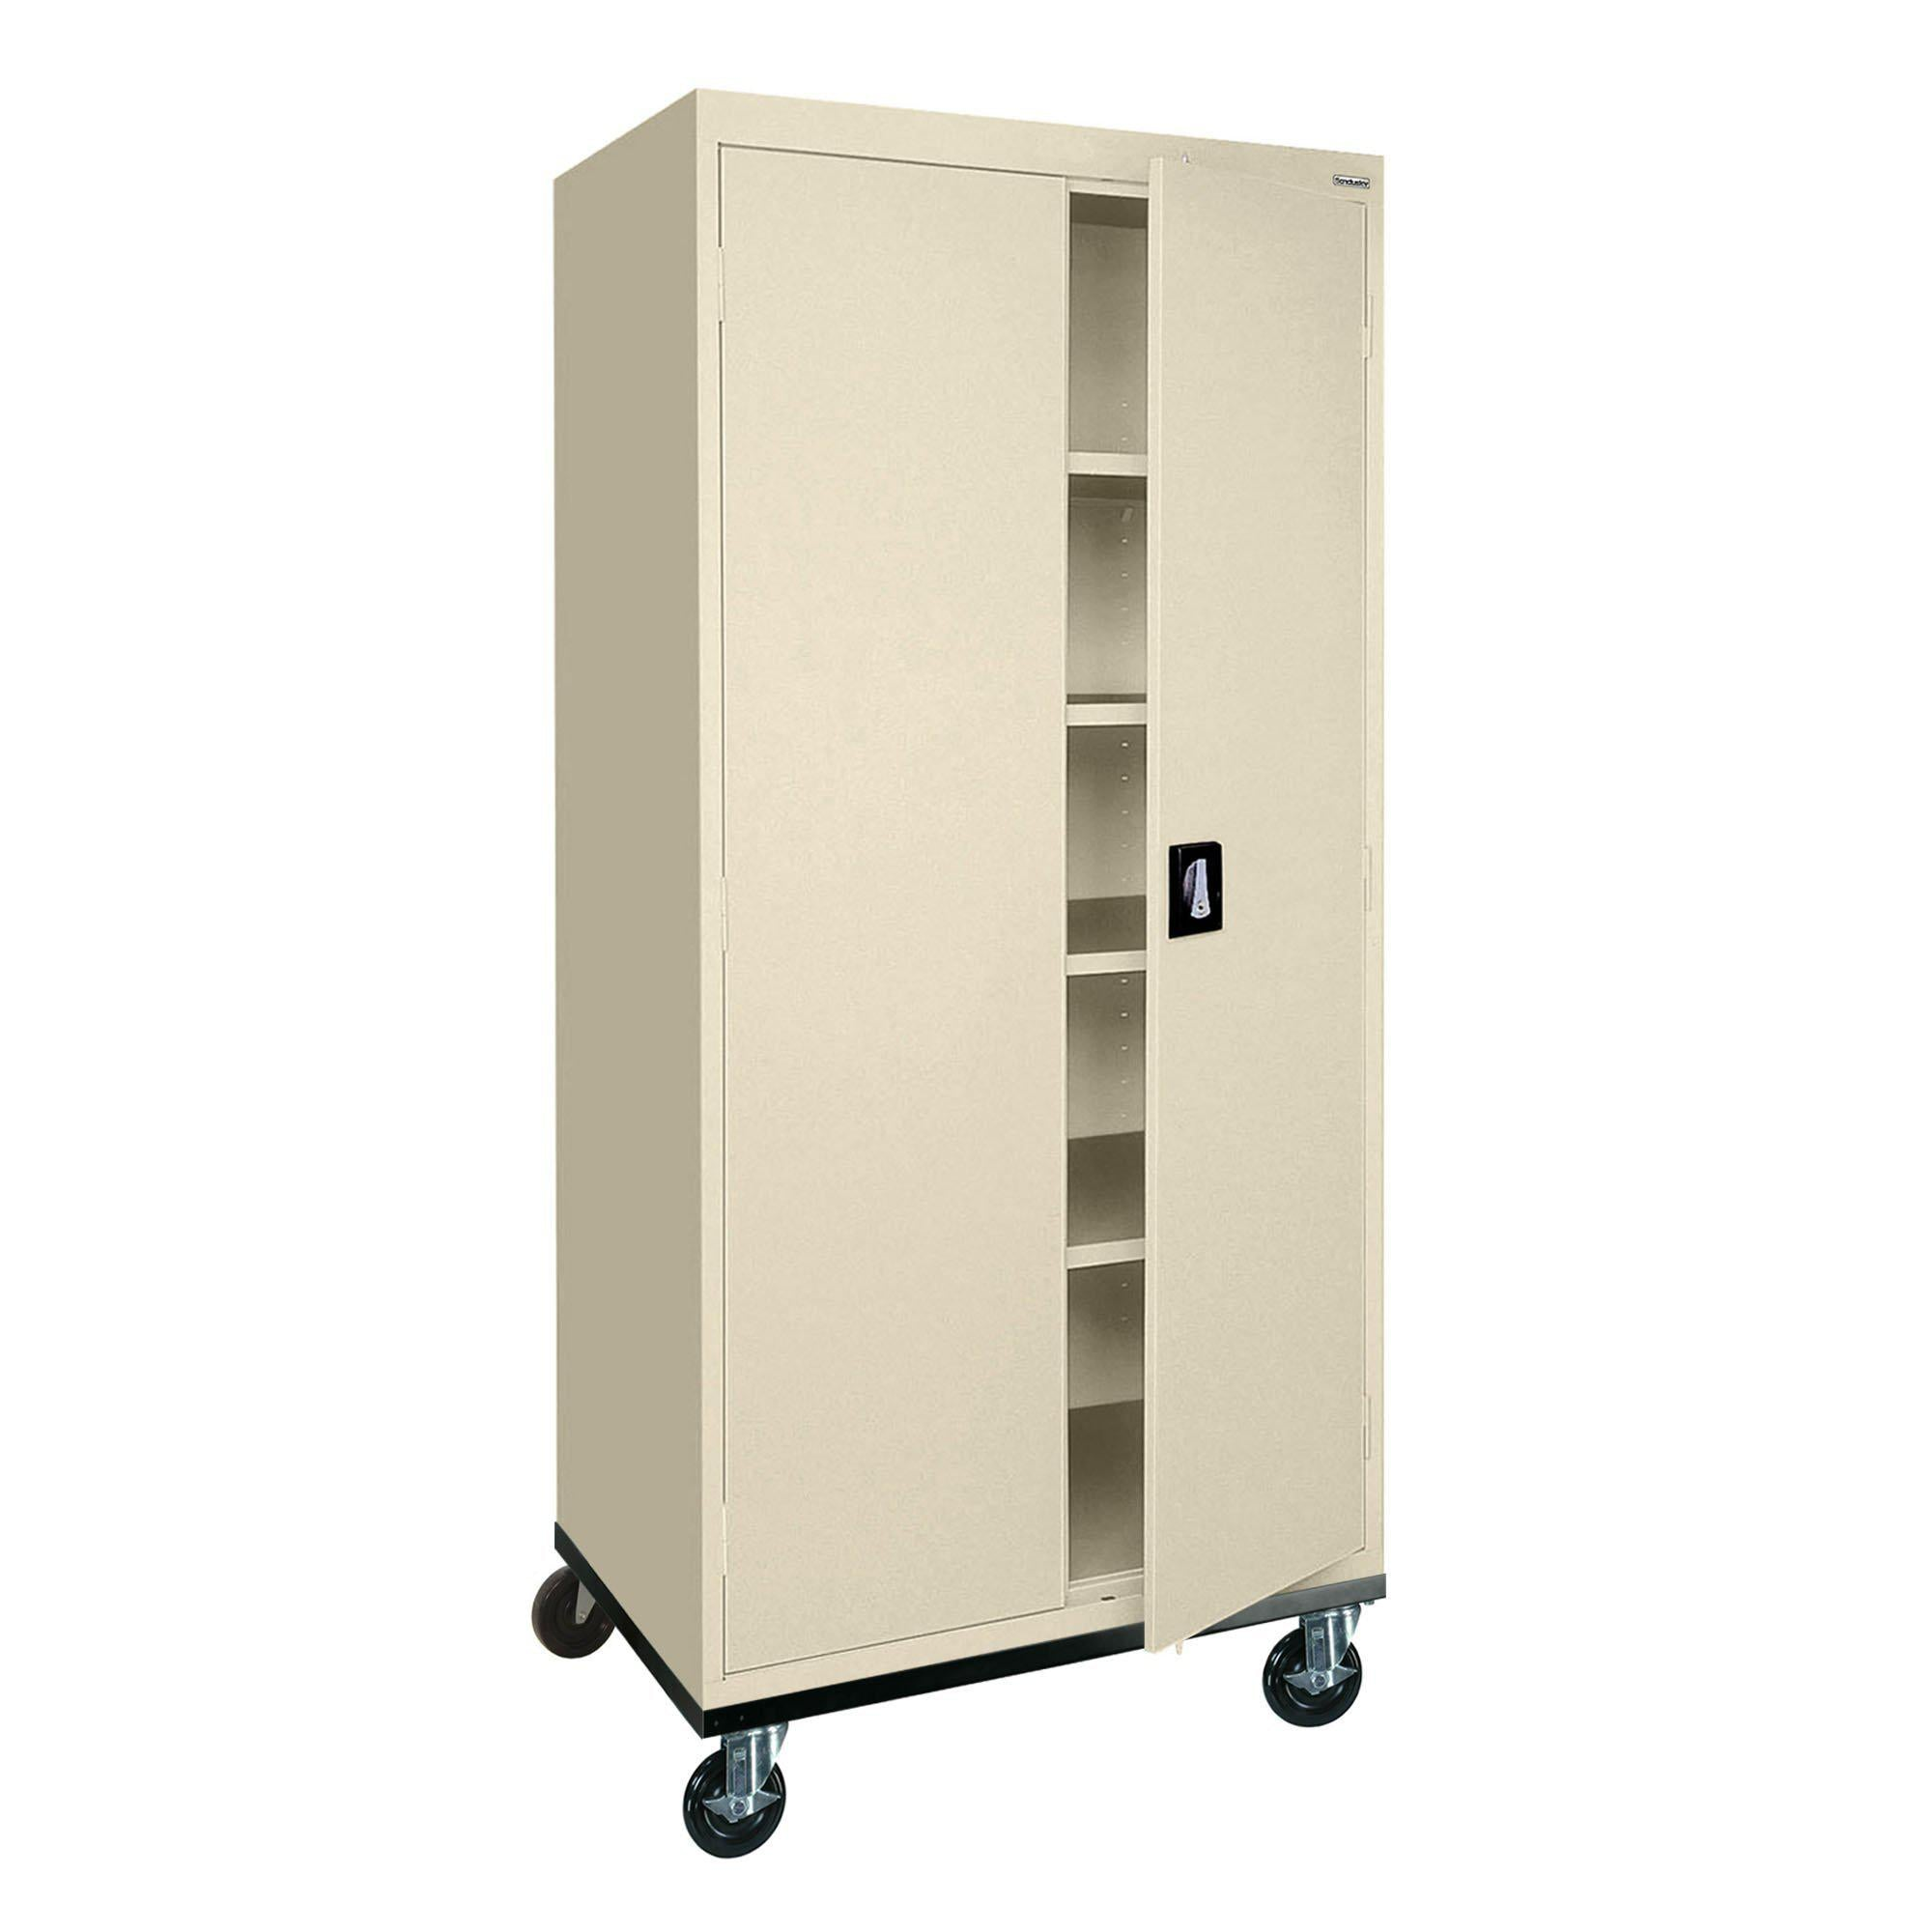 Transport Series Storage Cabinet, 36 x 24 x 72